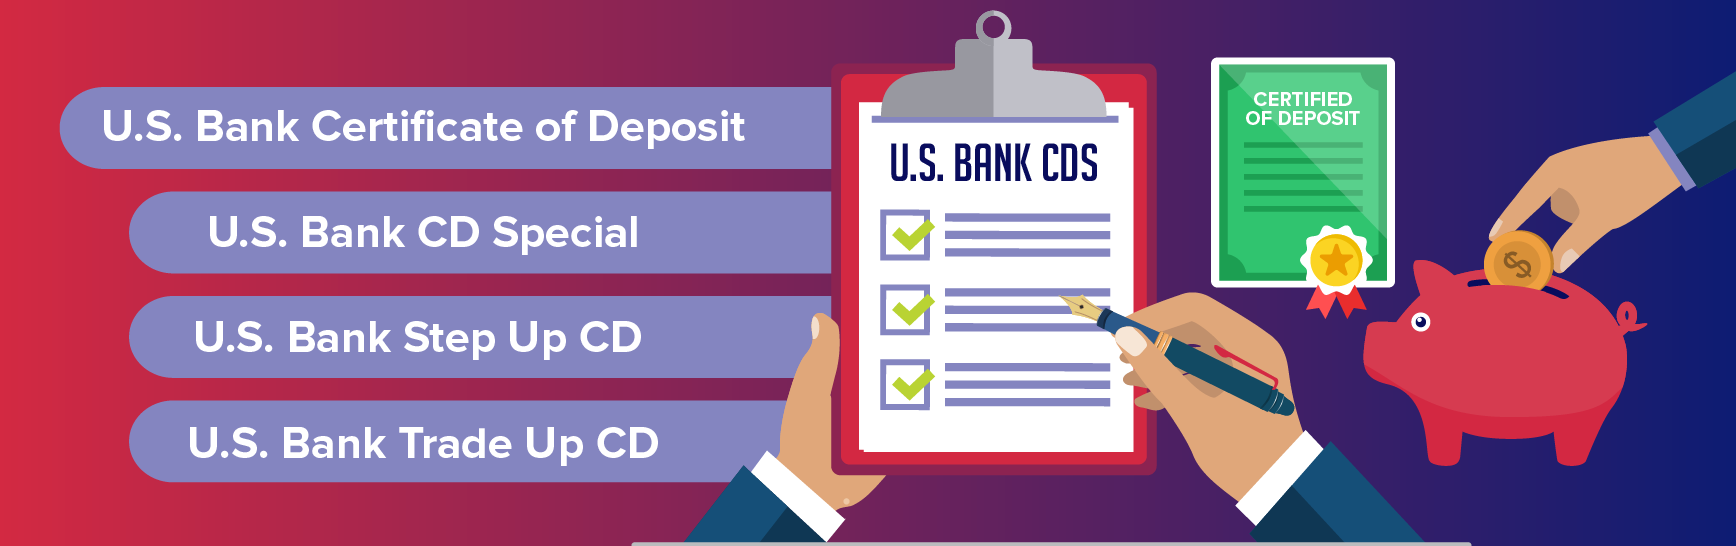 Us bank review creditloan different types of us bank cds xflitez Gallery